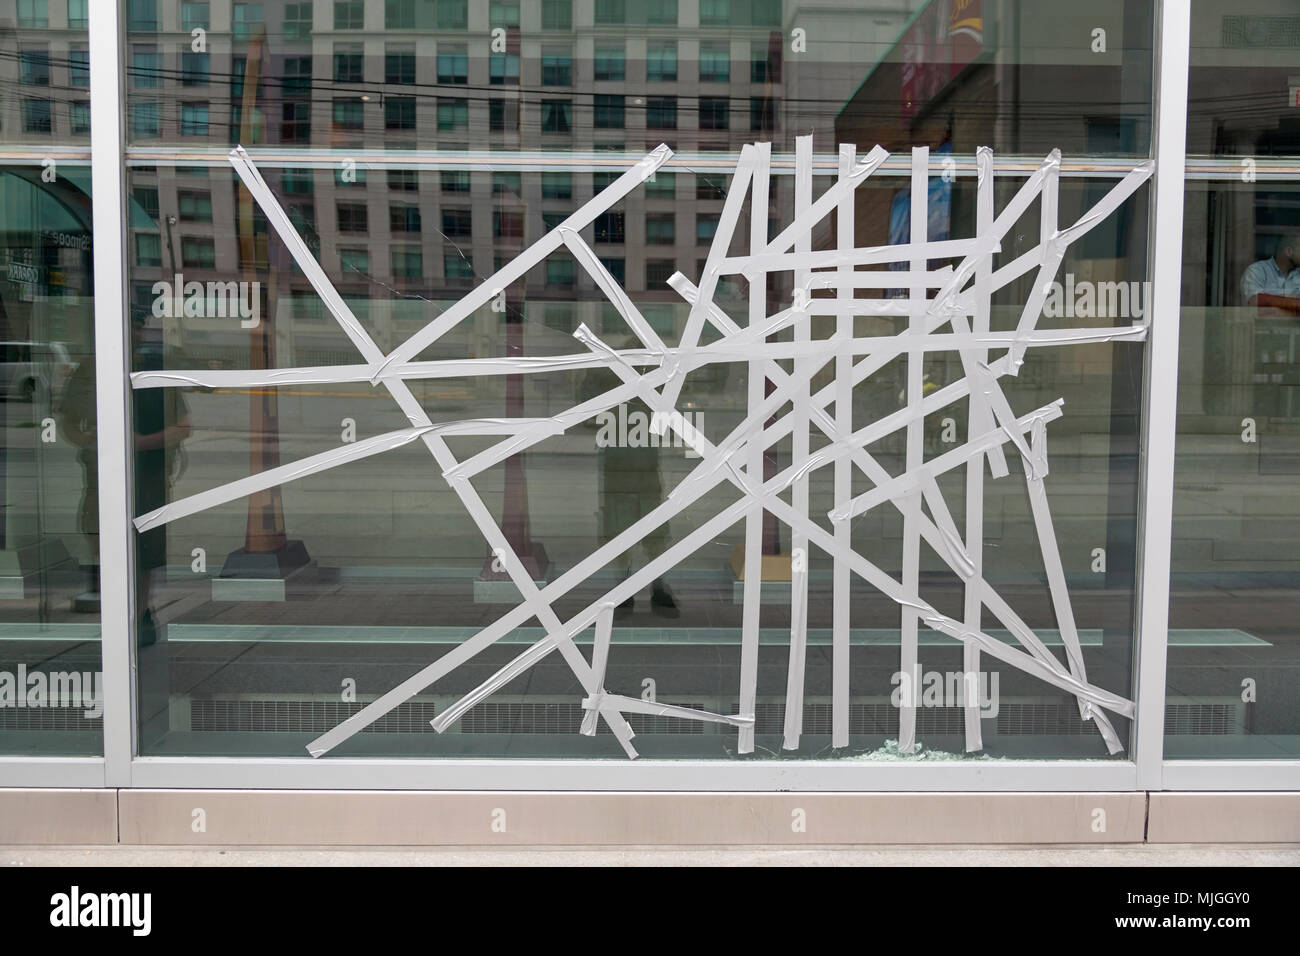 A broken window repaired with duct tape during the G20 summit in Downtown Toronto, Ontario, Canada. - Stock Image